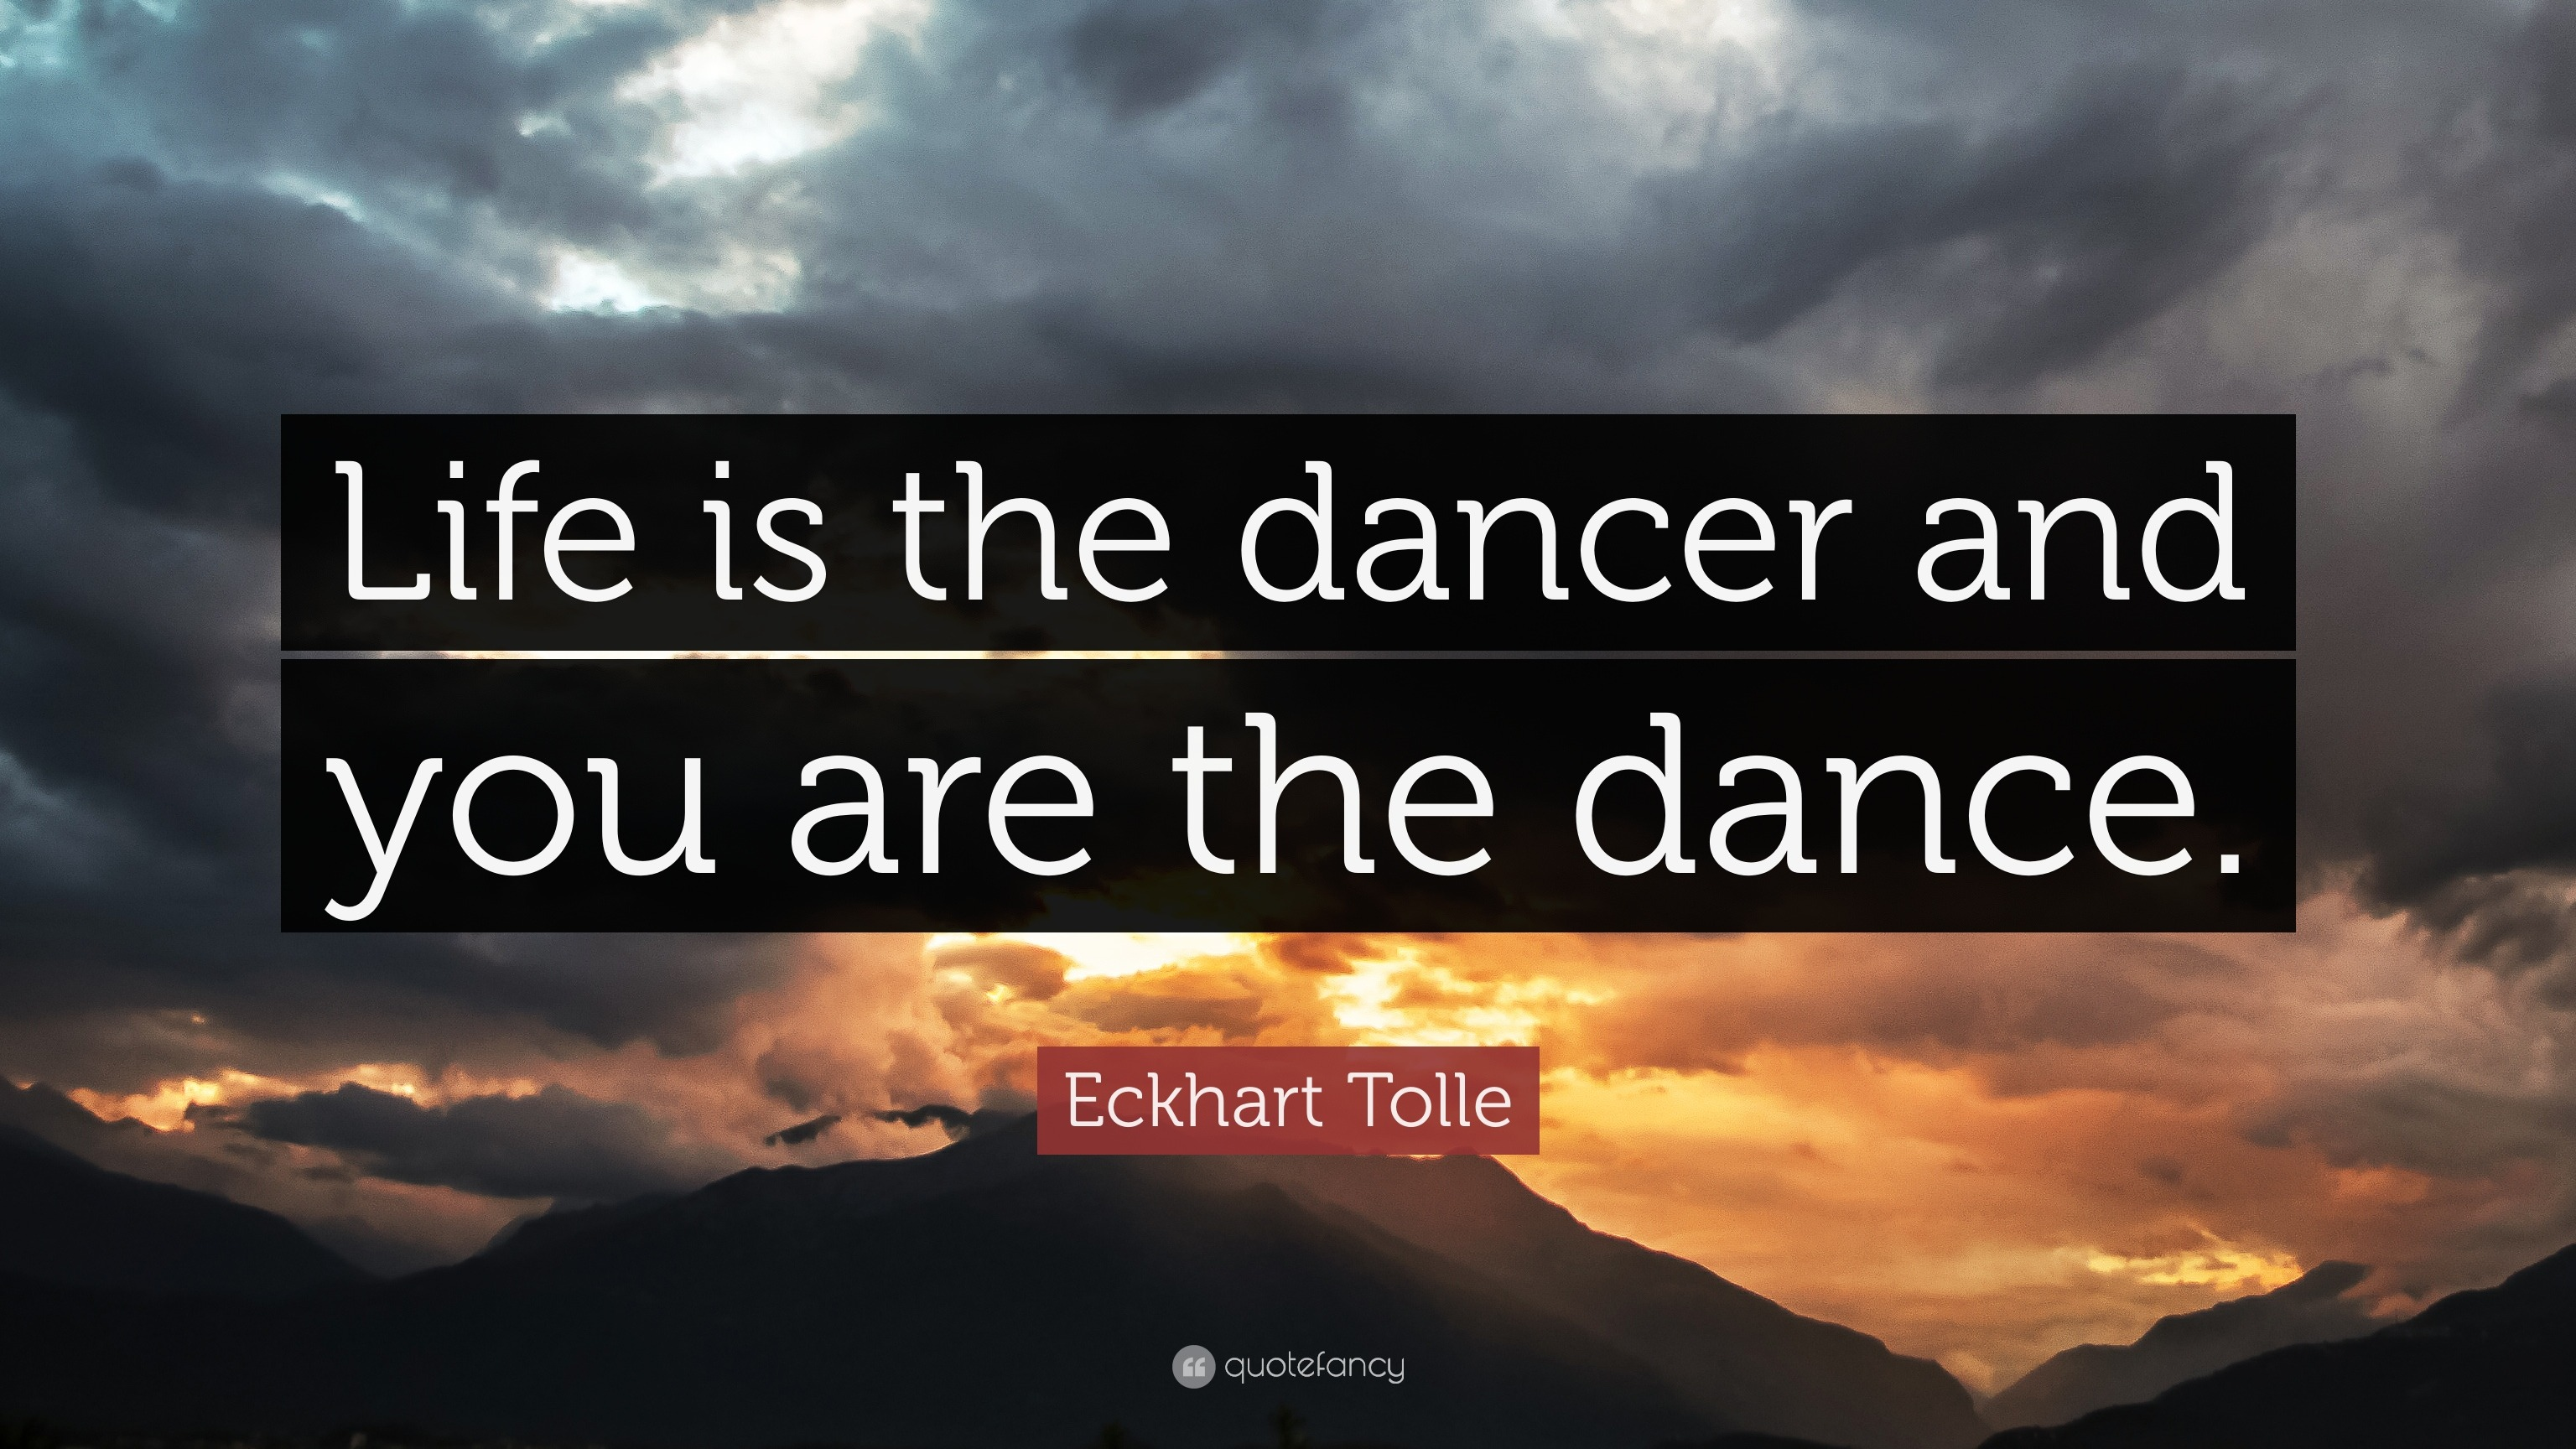 Quote from Eckhart Tolle